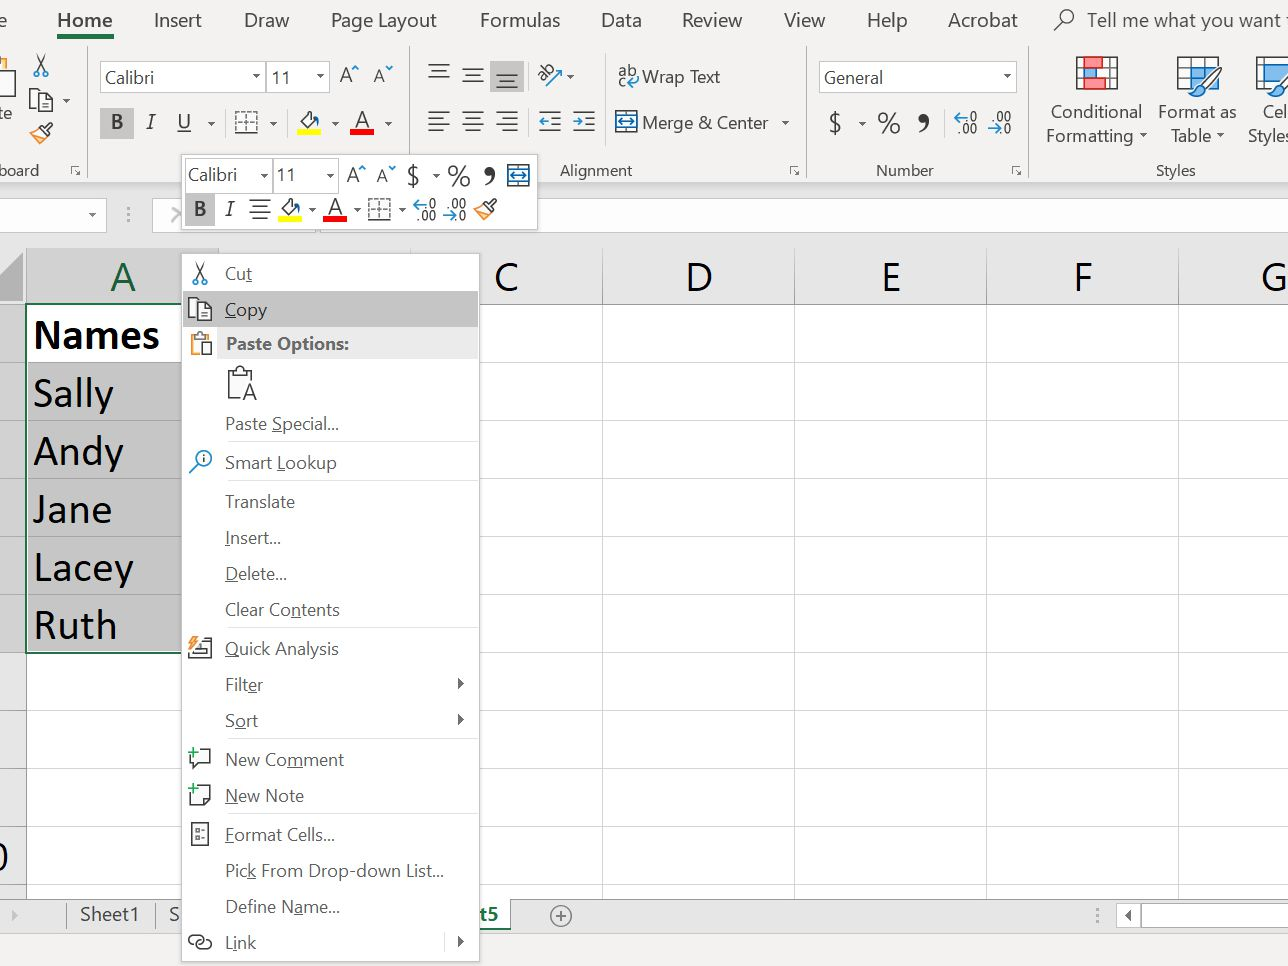 How To: Find and Remove duplicates in Excel - Office | EduPristine